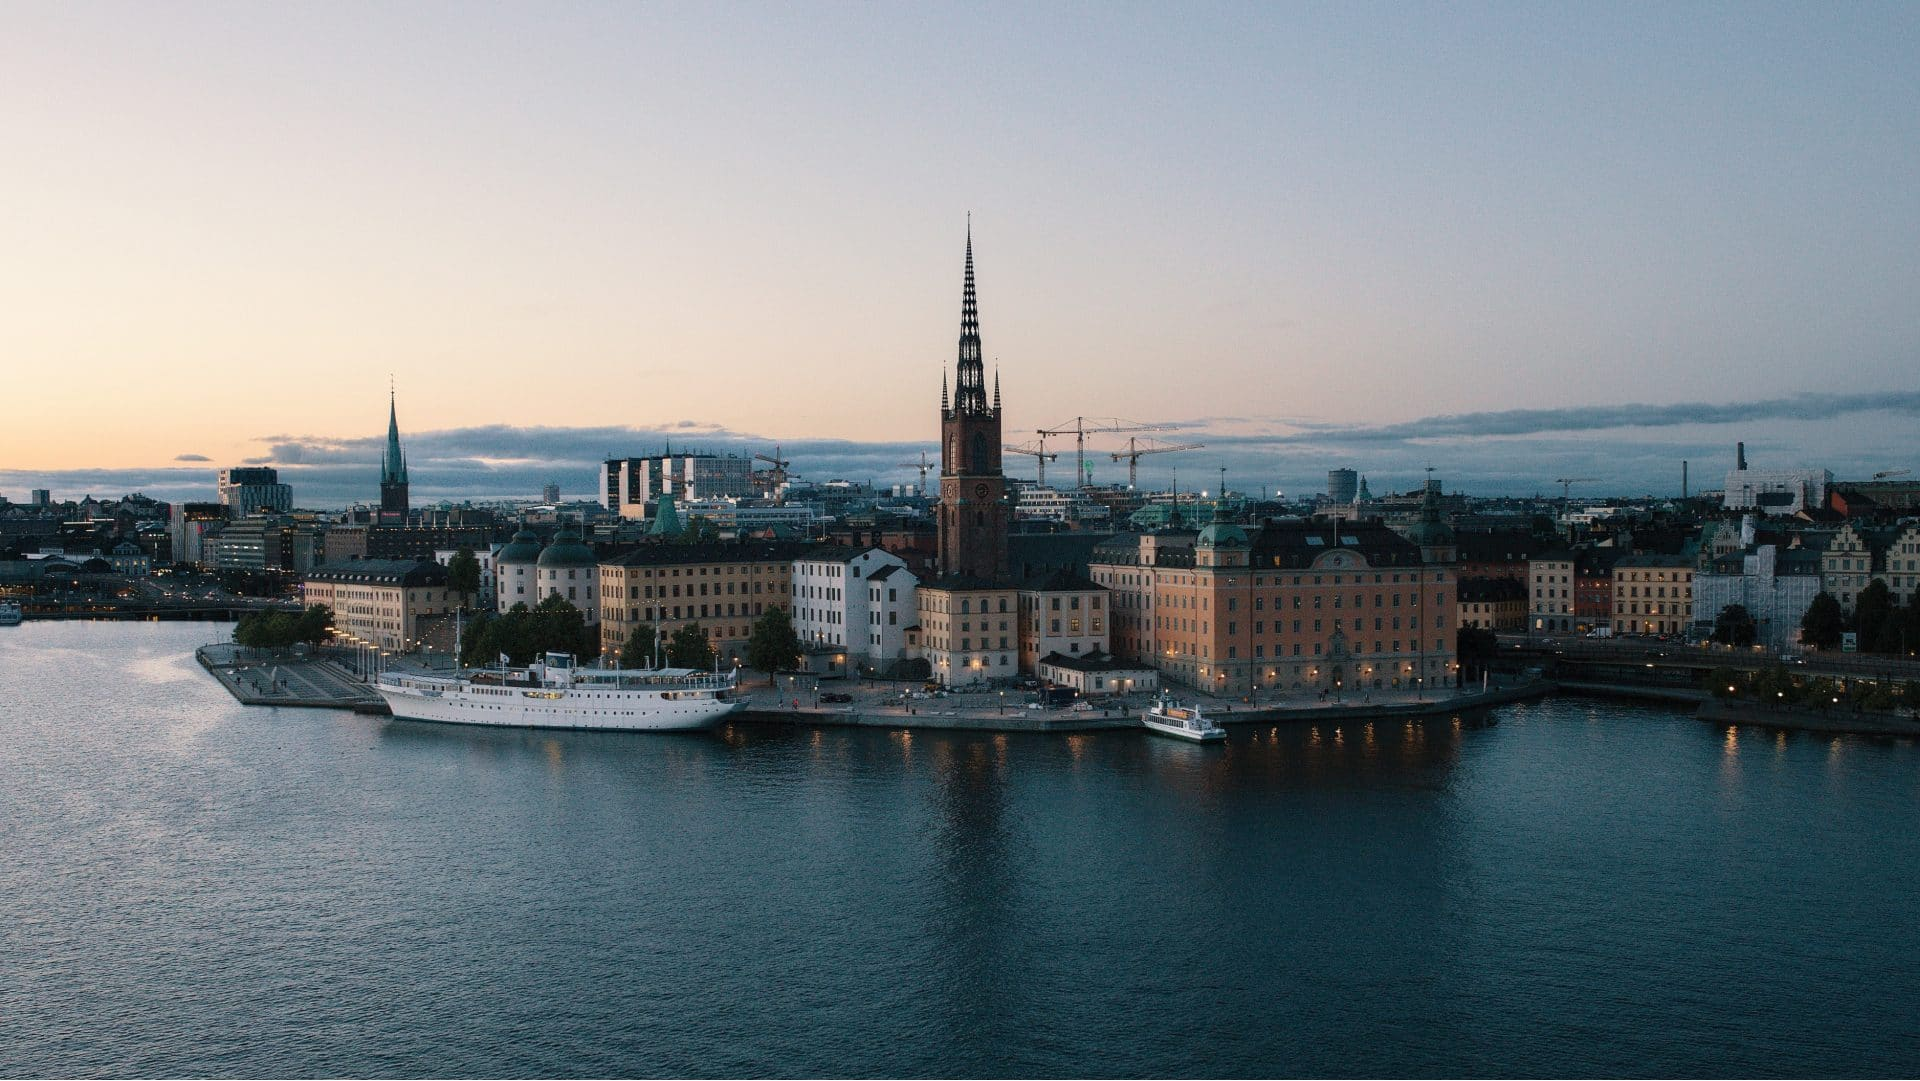 Silo AI expands to Sweden with plans to build a leading AI lab in Stockholm